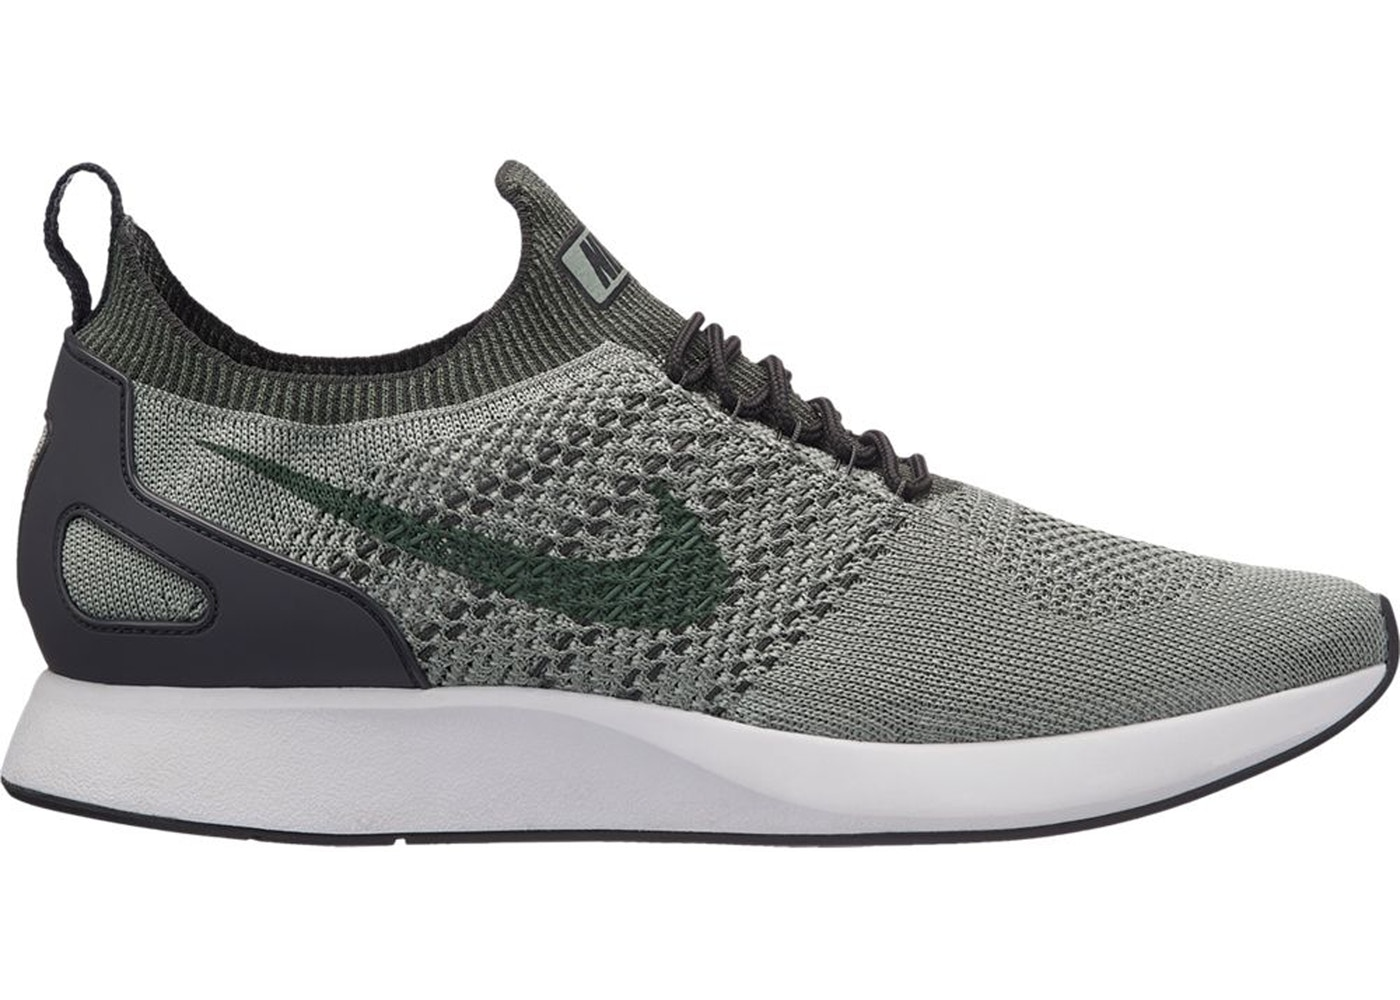 Nike Air Zoom Mariah Flyknit Racer Mica Green Anthracite - 918264-302